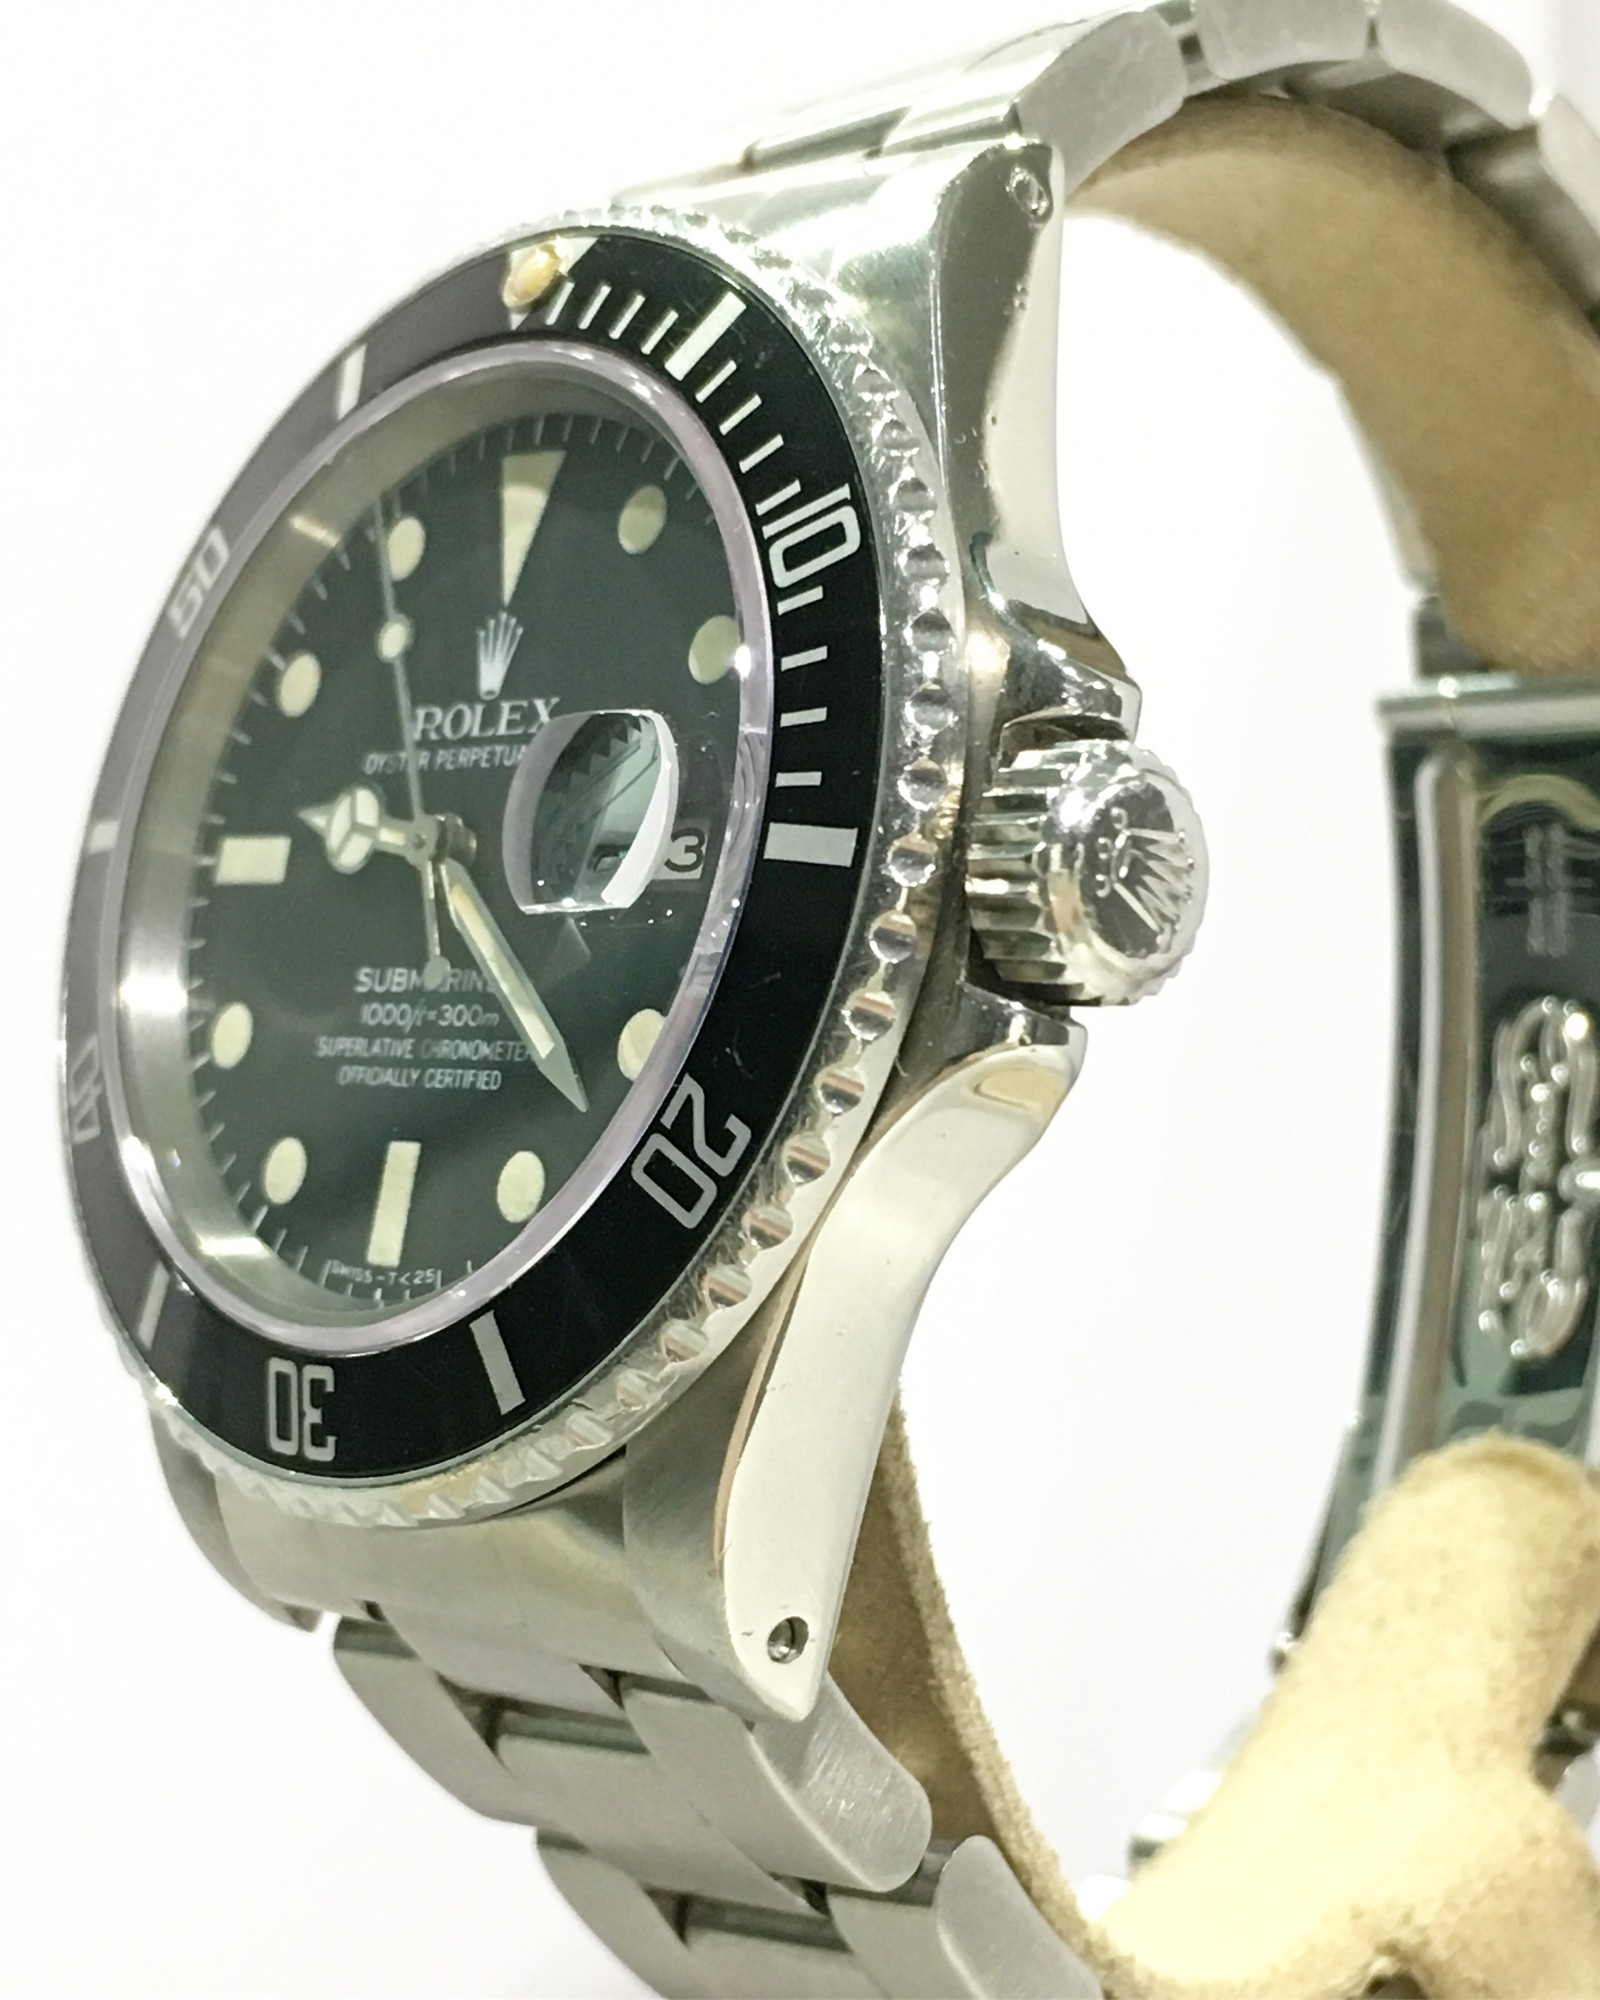 Montre occasion Rolex Submariner Date 16800.